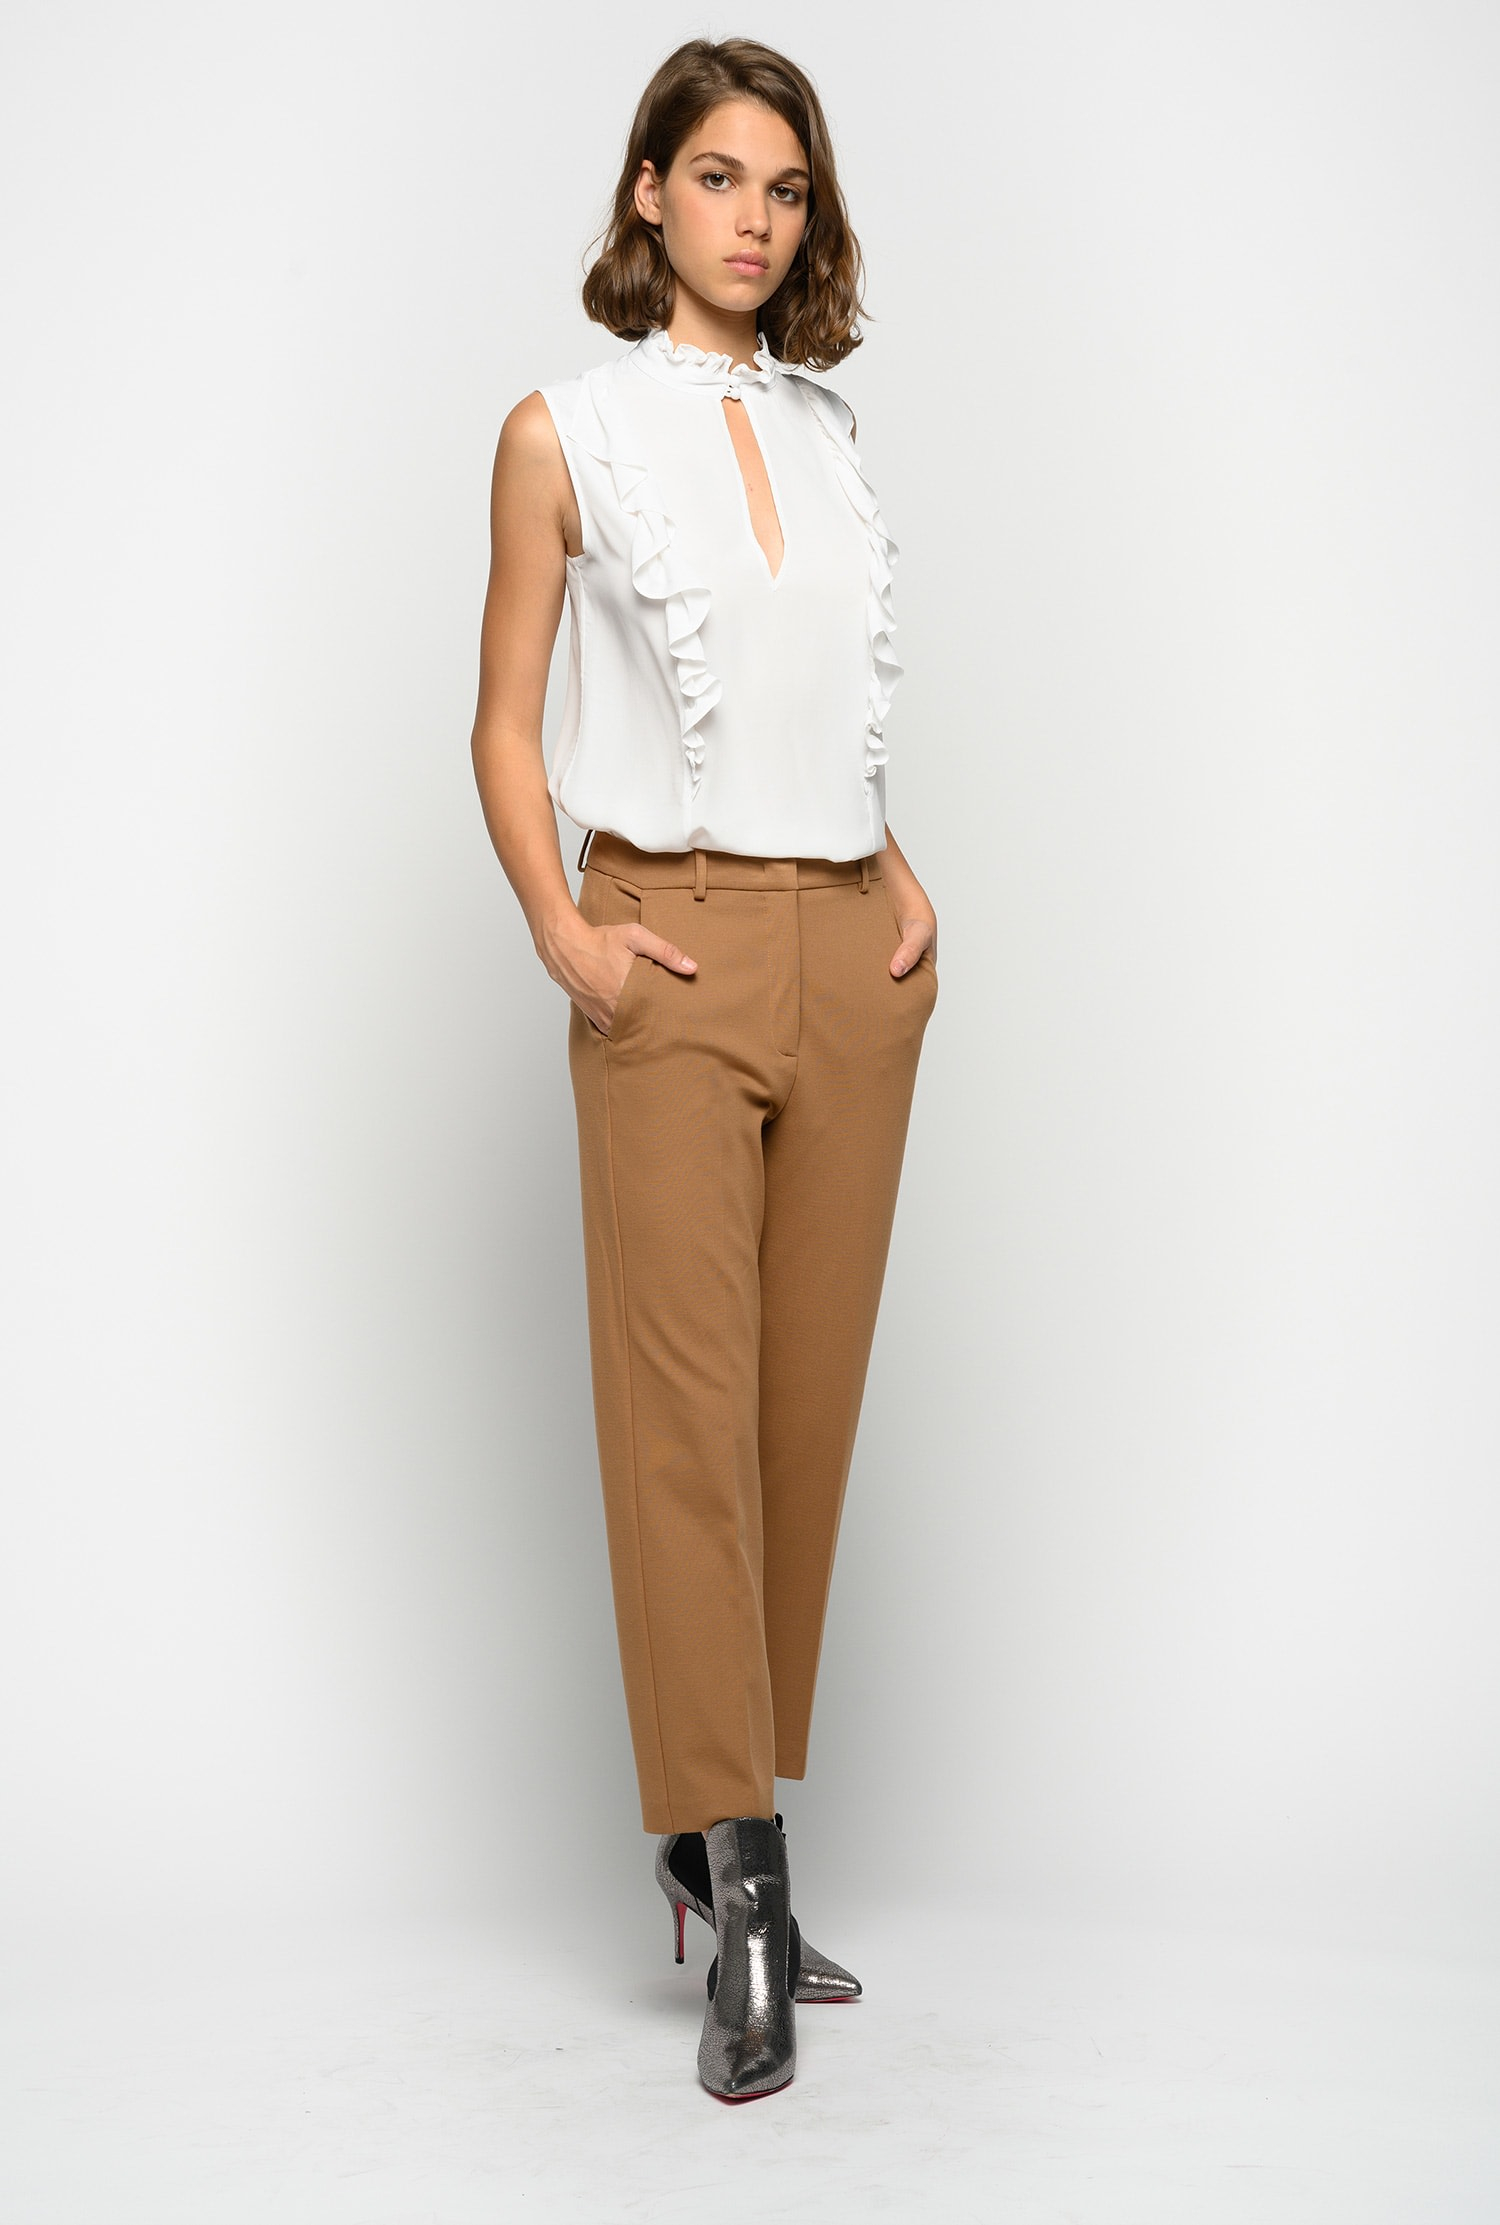 SHOPPING ON LINE PINKO PANTALONE IN GABARDINE DI LANA STRETCH BELLO 98 NEW COLLECTION WOMEN'S FALL WINTER 2020/2021